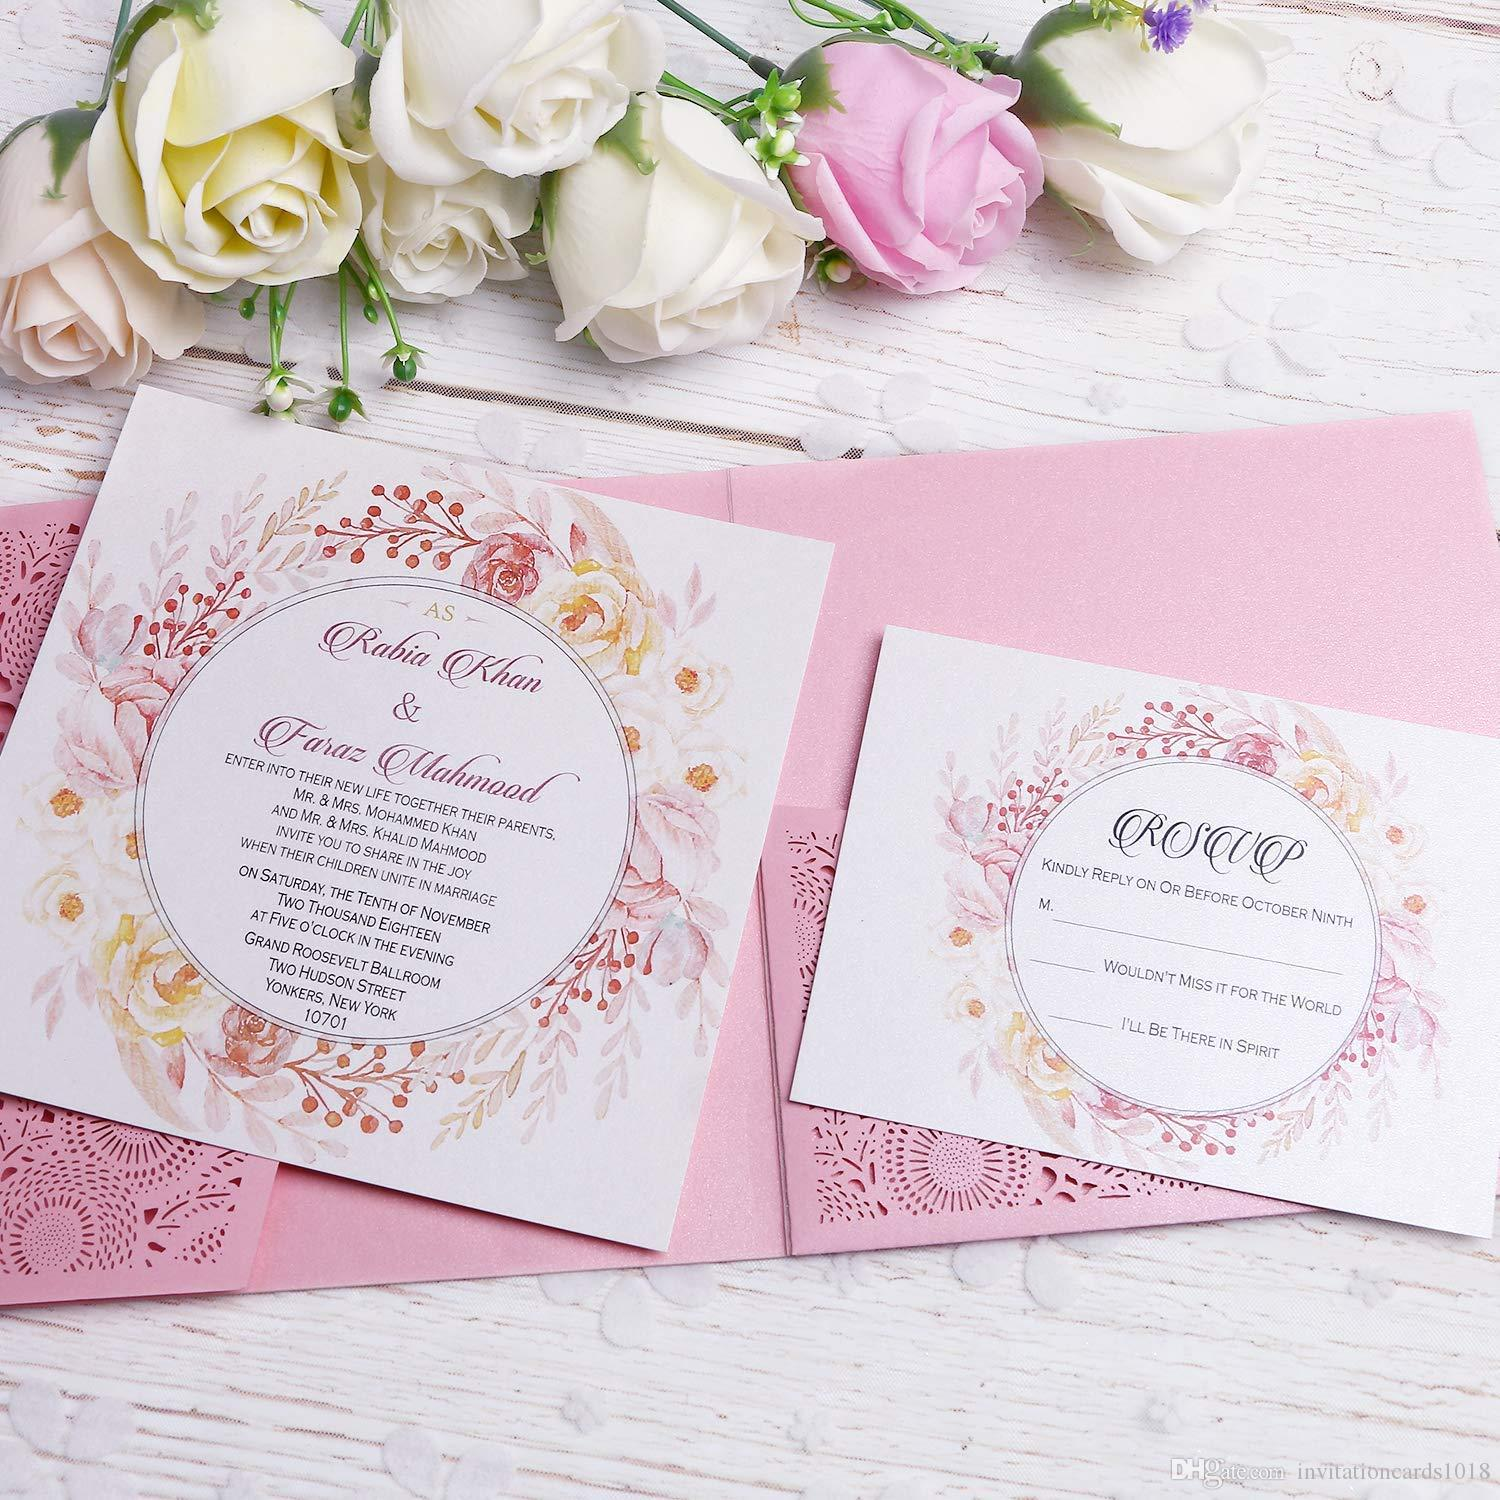 New Pink 3 Folds Square Wedding Invitation Cards With Belt For Birthday Engagement Greeting Invitations Invite Free Rsvp Elegant: Pink And Burgundy Wedding Invitations At Websimilar.org